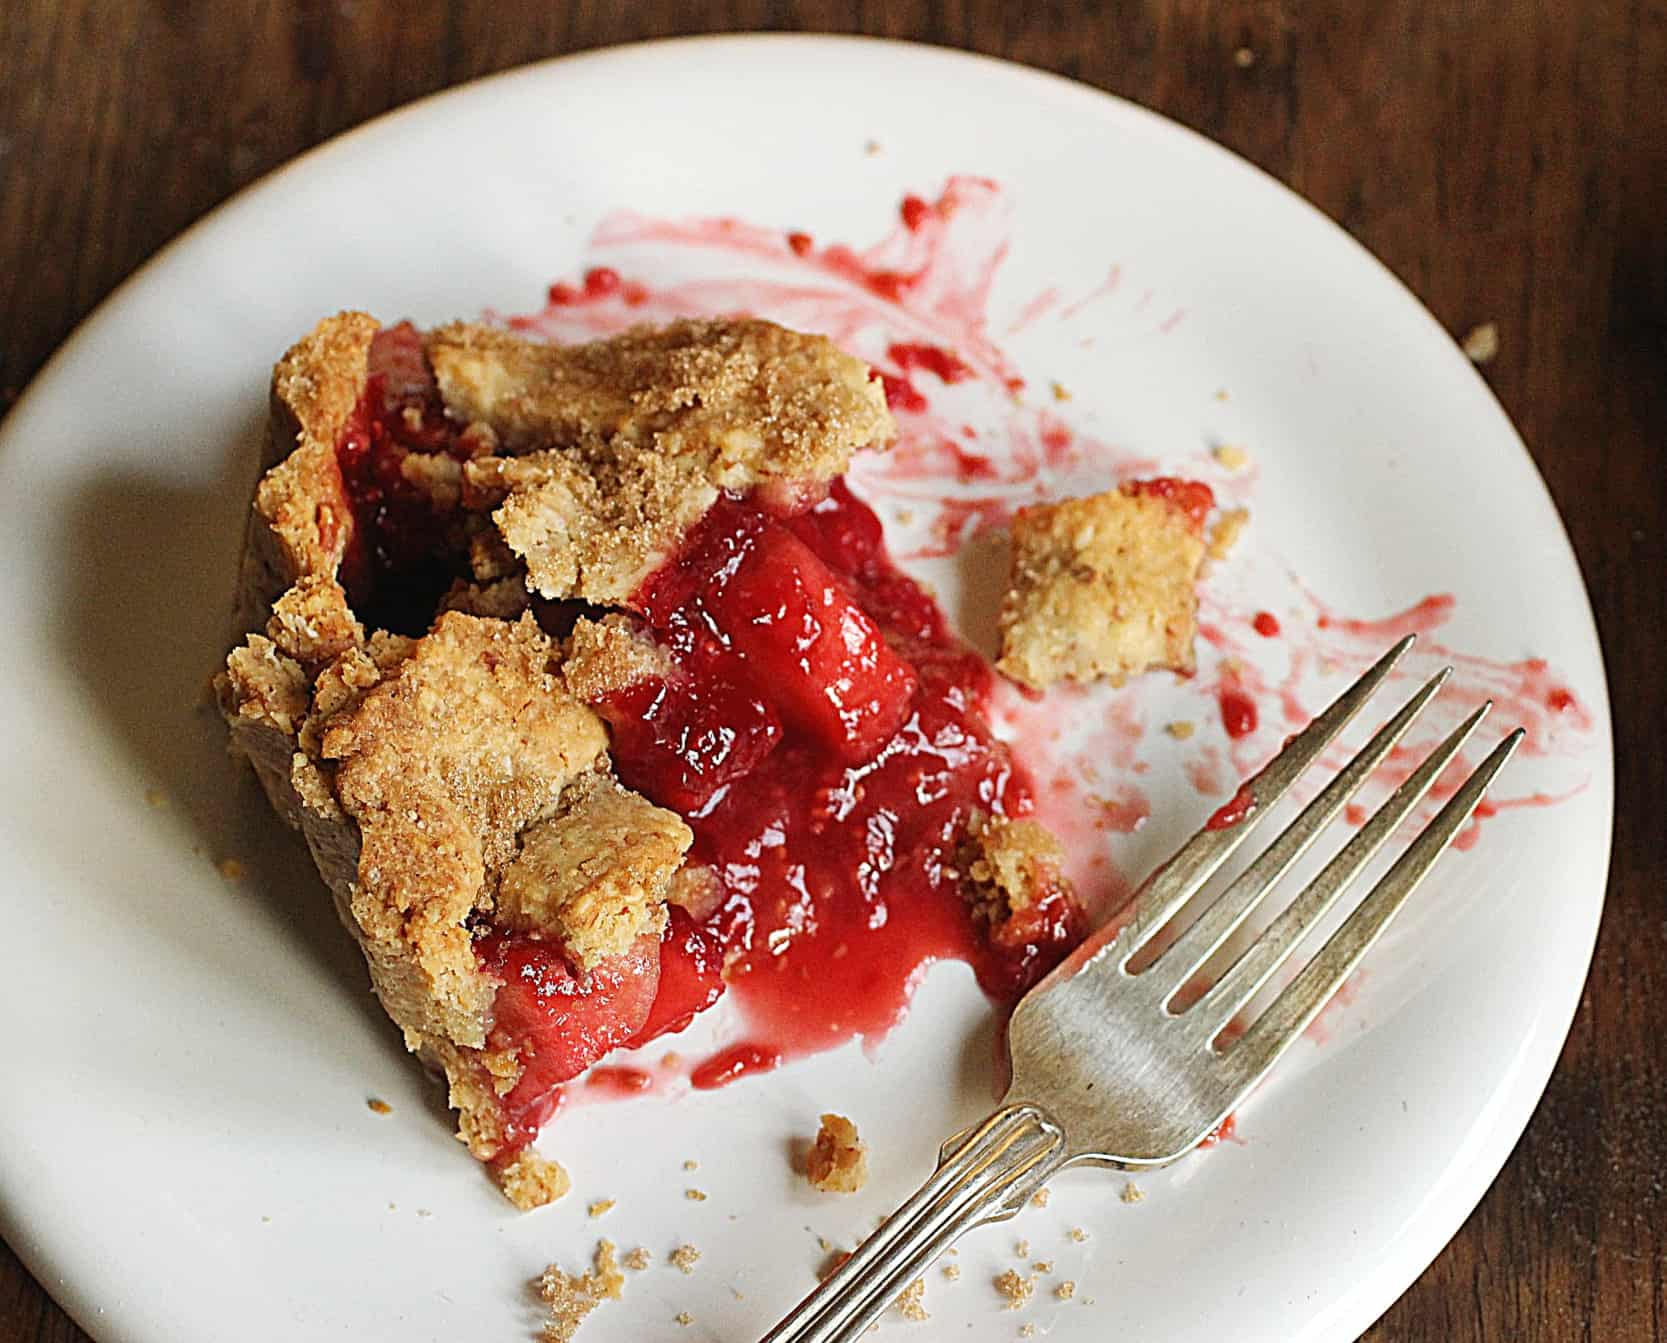 Slice of raspberry apple pie on white plate, silver fork, wooden table